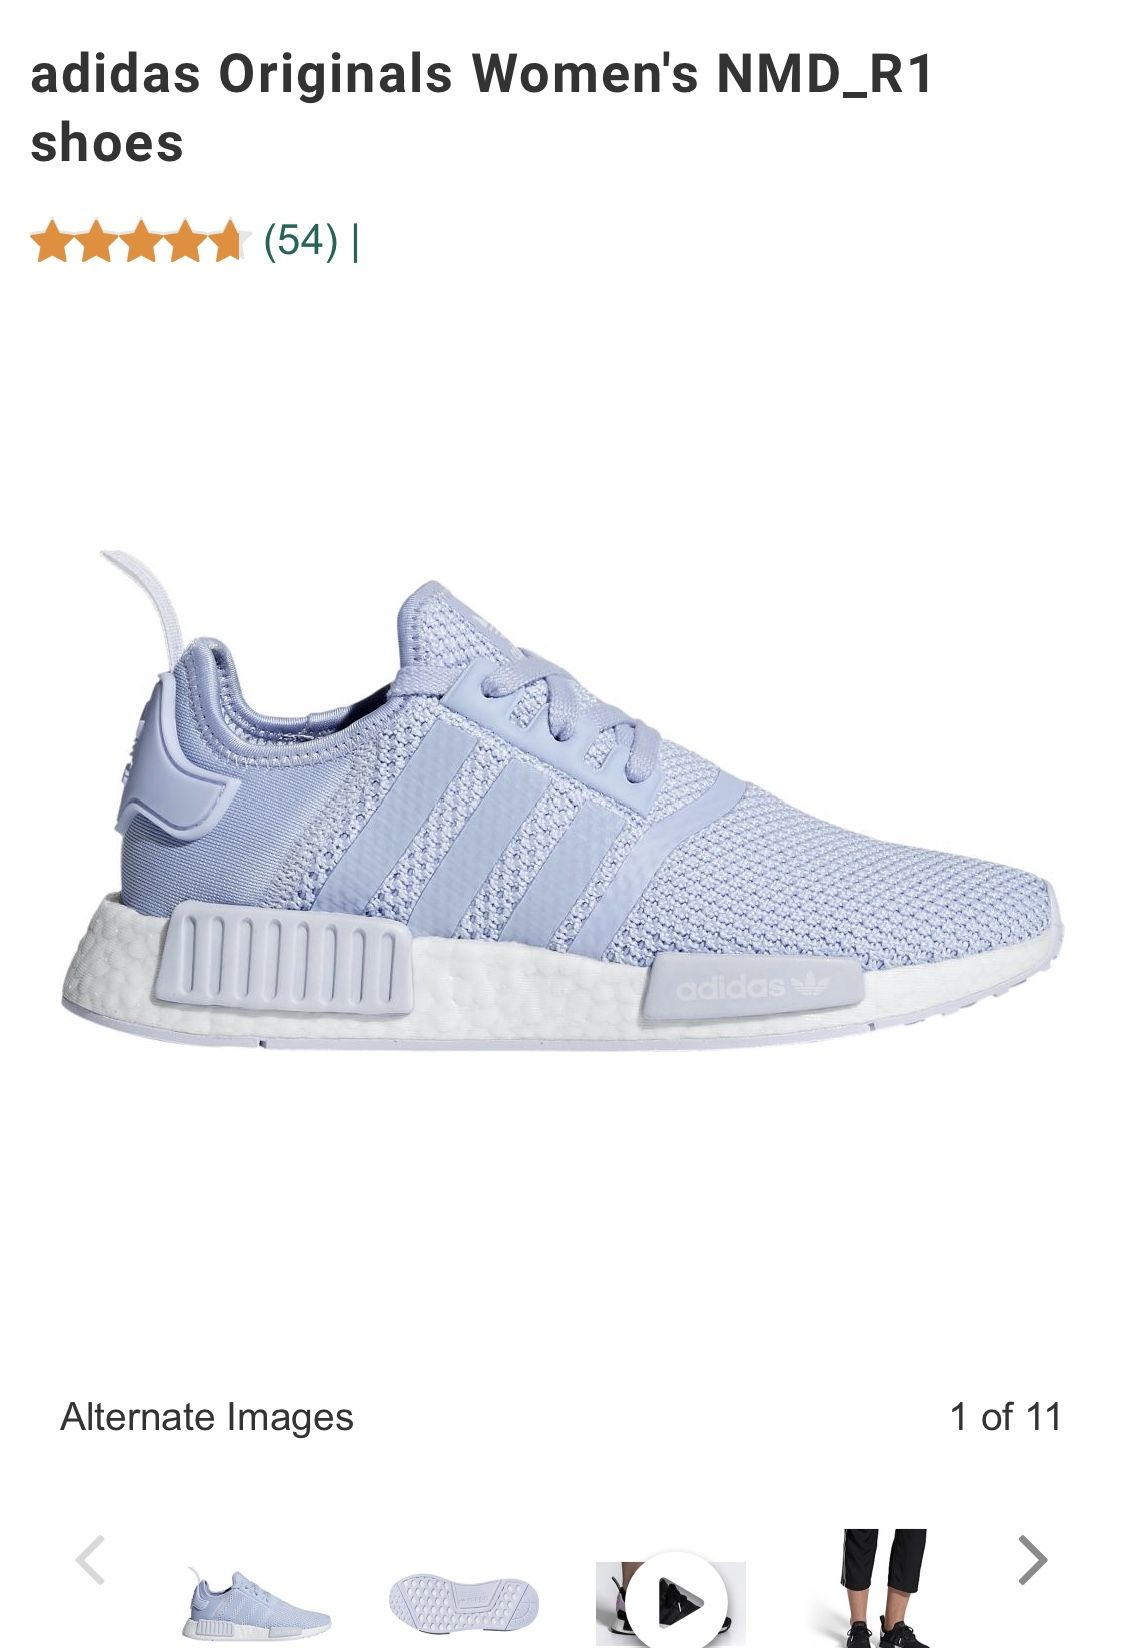 exquisite design cost charm high fashion Adidas originals womens NMD_R1 shoes periwinkle. Size 7.5 in ...